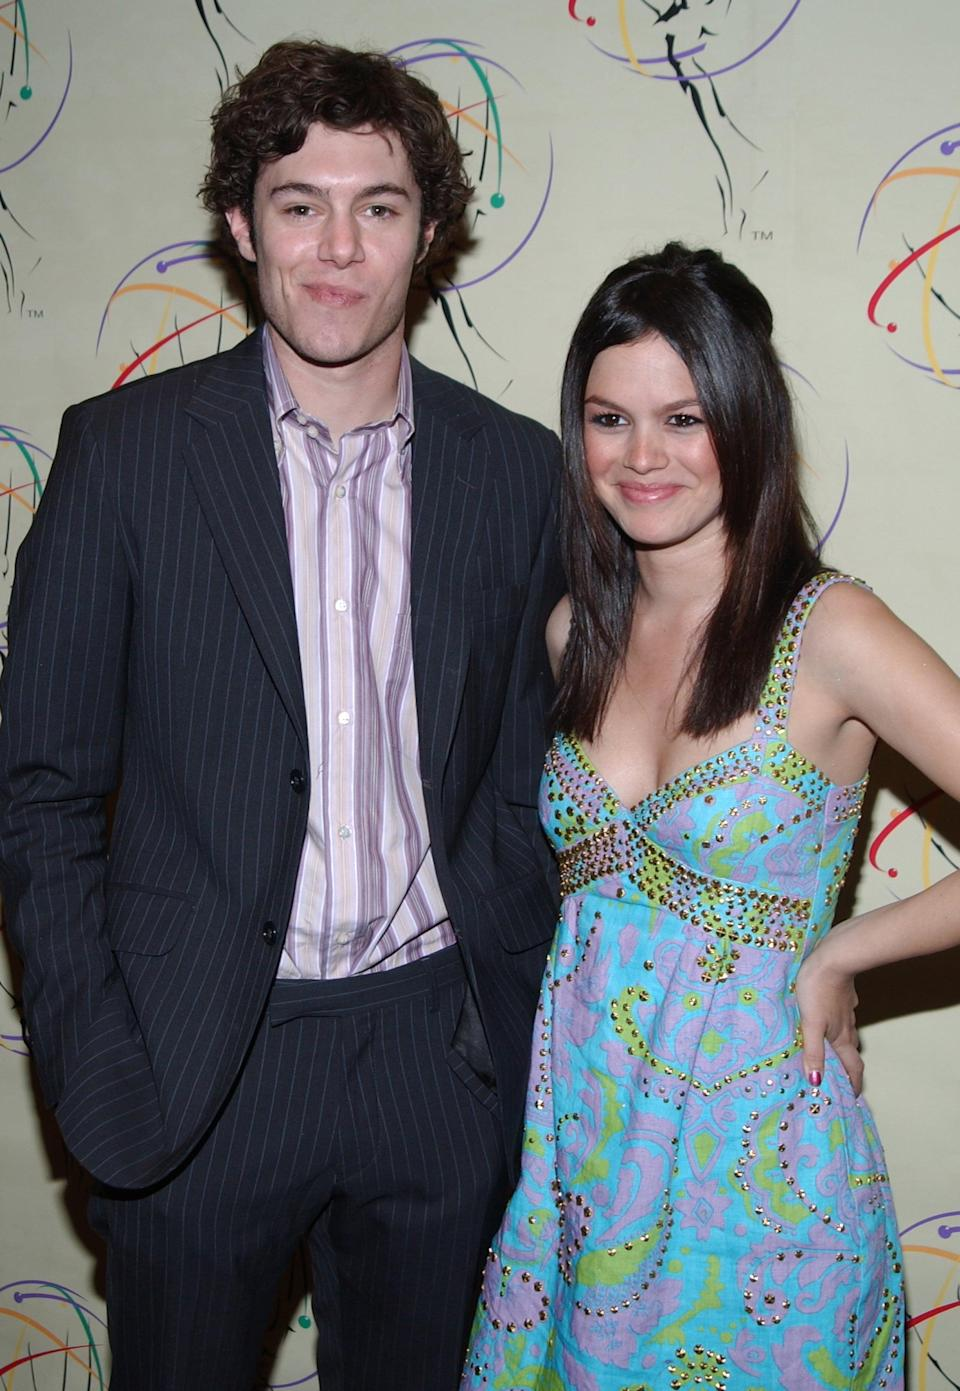 """<p>While filming <strong>The O.C.</strong>, Adam and Rachel's onscreen romance led to an IRL relationship, though the actors decided to split after three years of dating. However, they continued to play Seth and Summer until the show ended in 2007, and their characters even got married. </p> <p>The former couple has kept quiet about their on-set relationship post-breakup, but a run-in at an airport proved that there's no bad blood between the two. In August 2019, <a href=""""http://www.instagram.com/p/B1IQ2STAv4a/"""" class=""""link rapid-noclick-resp"""" rel=""""nofollow noopener"""" target=""""_blank"""" data-ylk=""""slk:Rachel posted an Instagram"""">Rachel posted an Instagram</a> from JFK, where she coincidentally ran into her ex. """"Ran into my ol buddy from jfk to lax #californiaherewecome,"""" she captioned the selfie. </p>"""